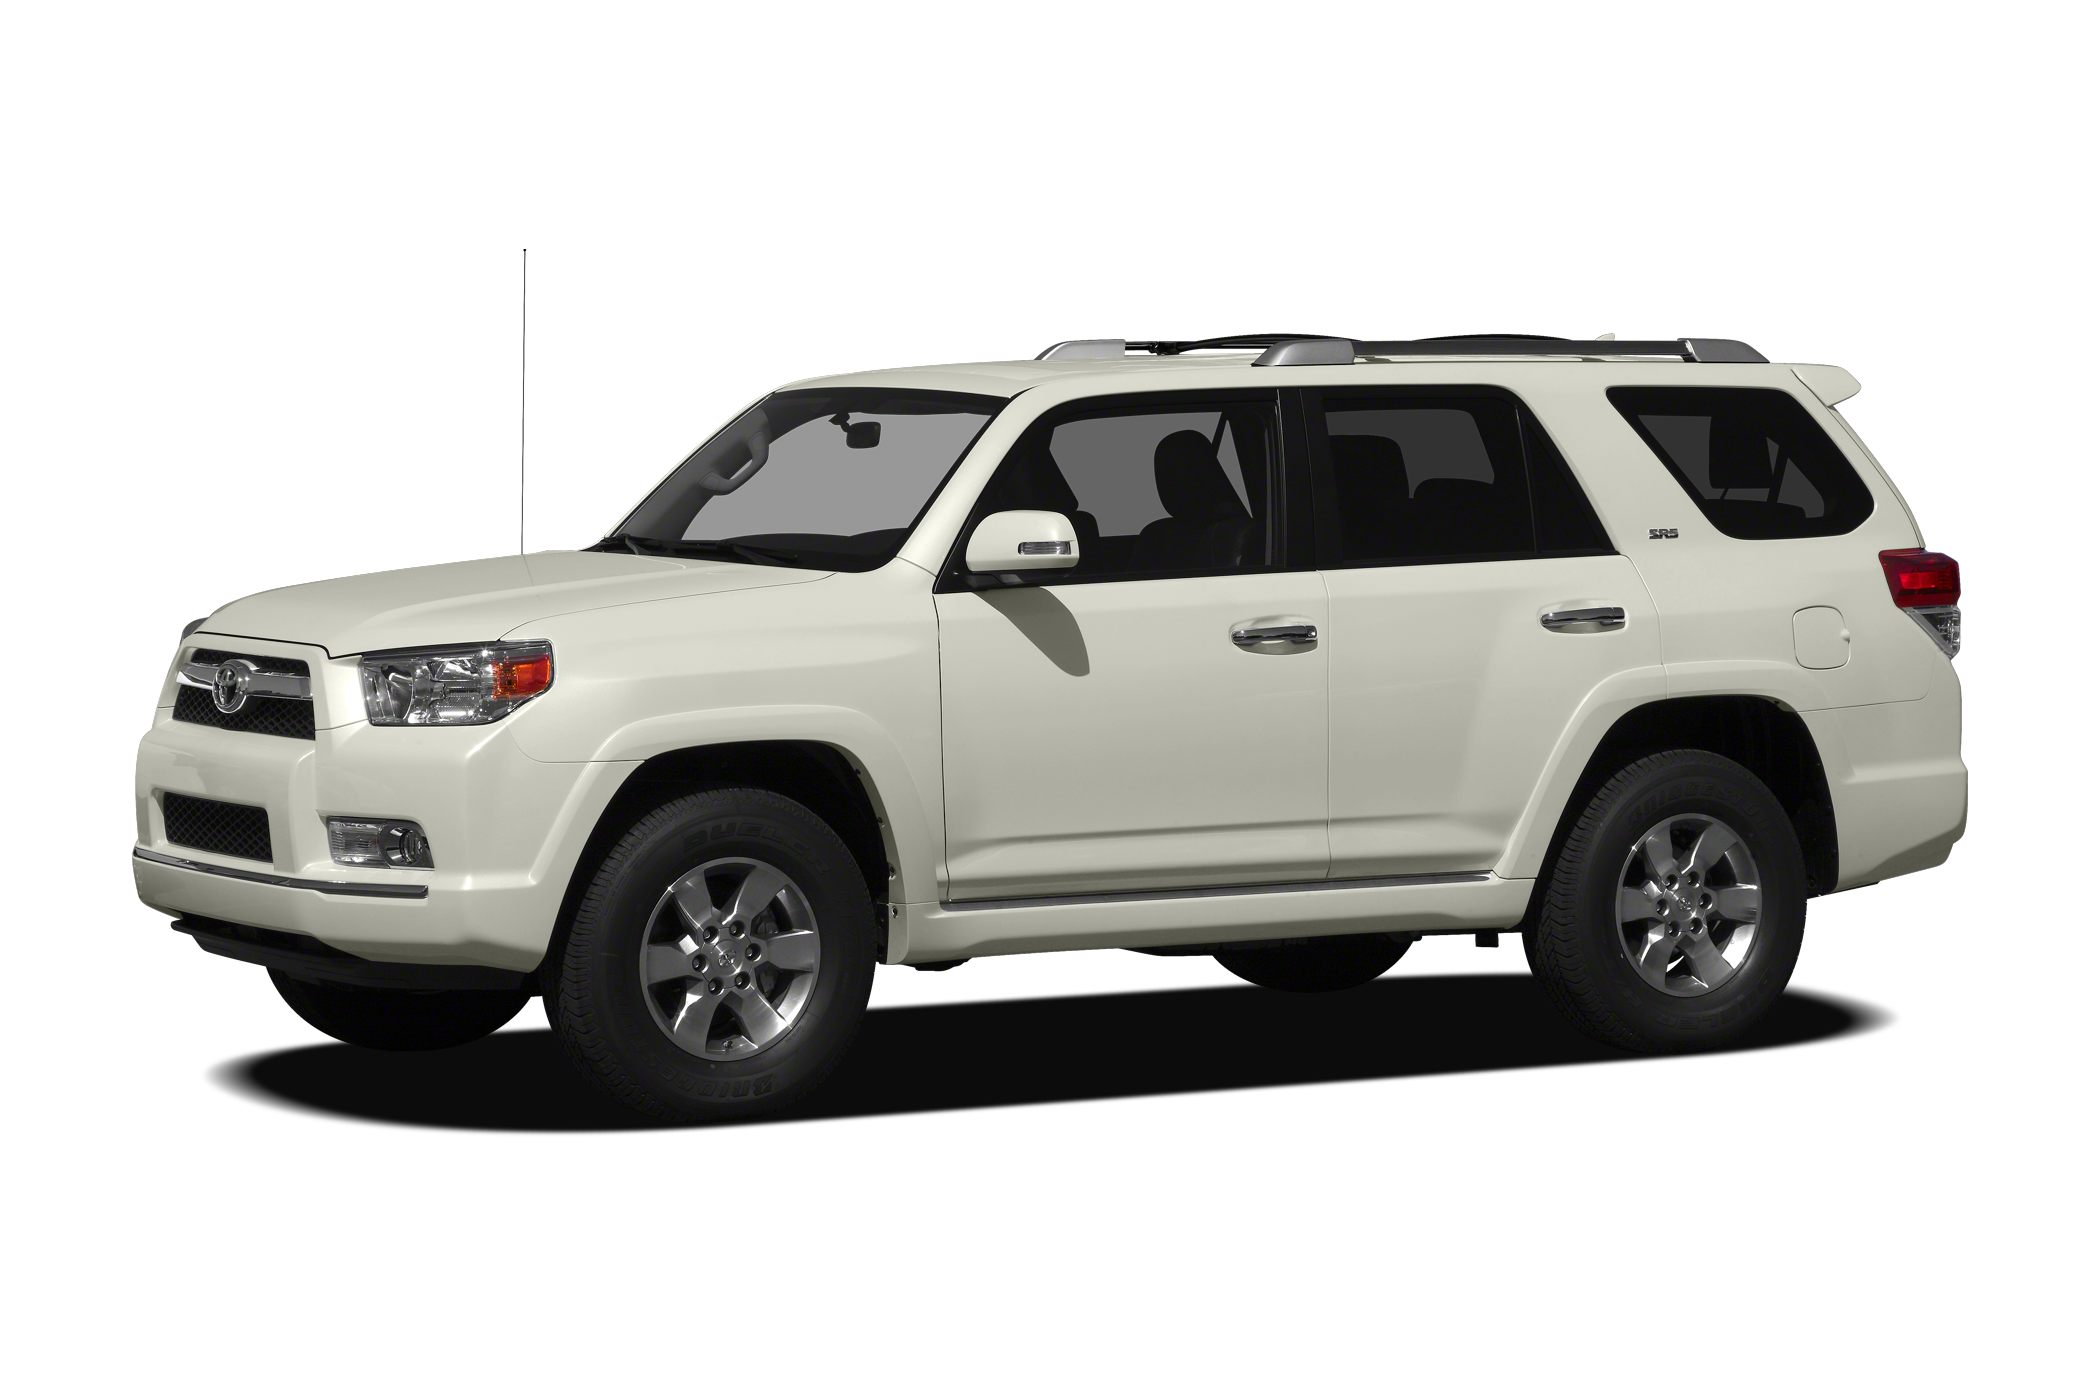 2012 Toyota 4Runner SR5 SUV for sale in Buckhannon for $33,999 with 12,790 miles